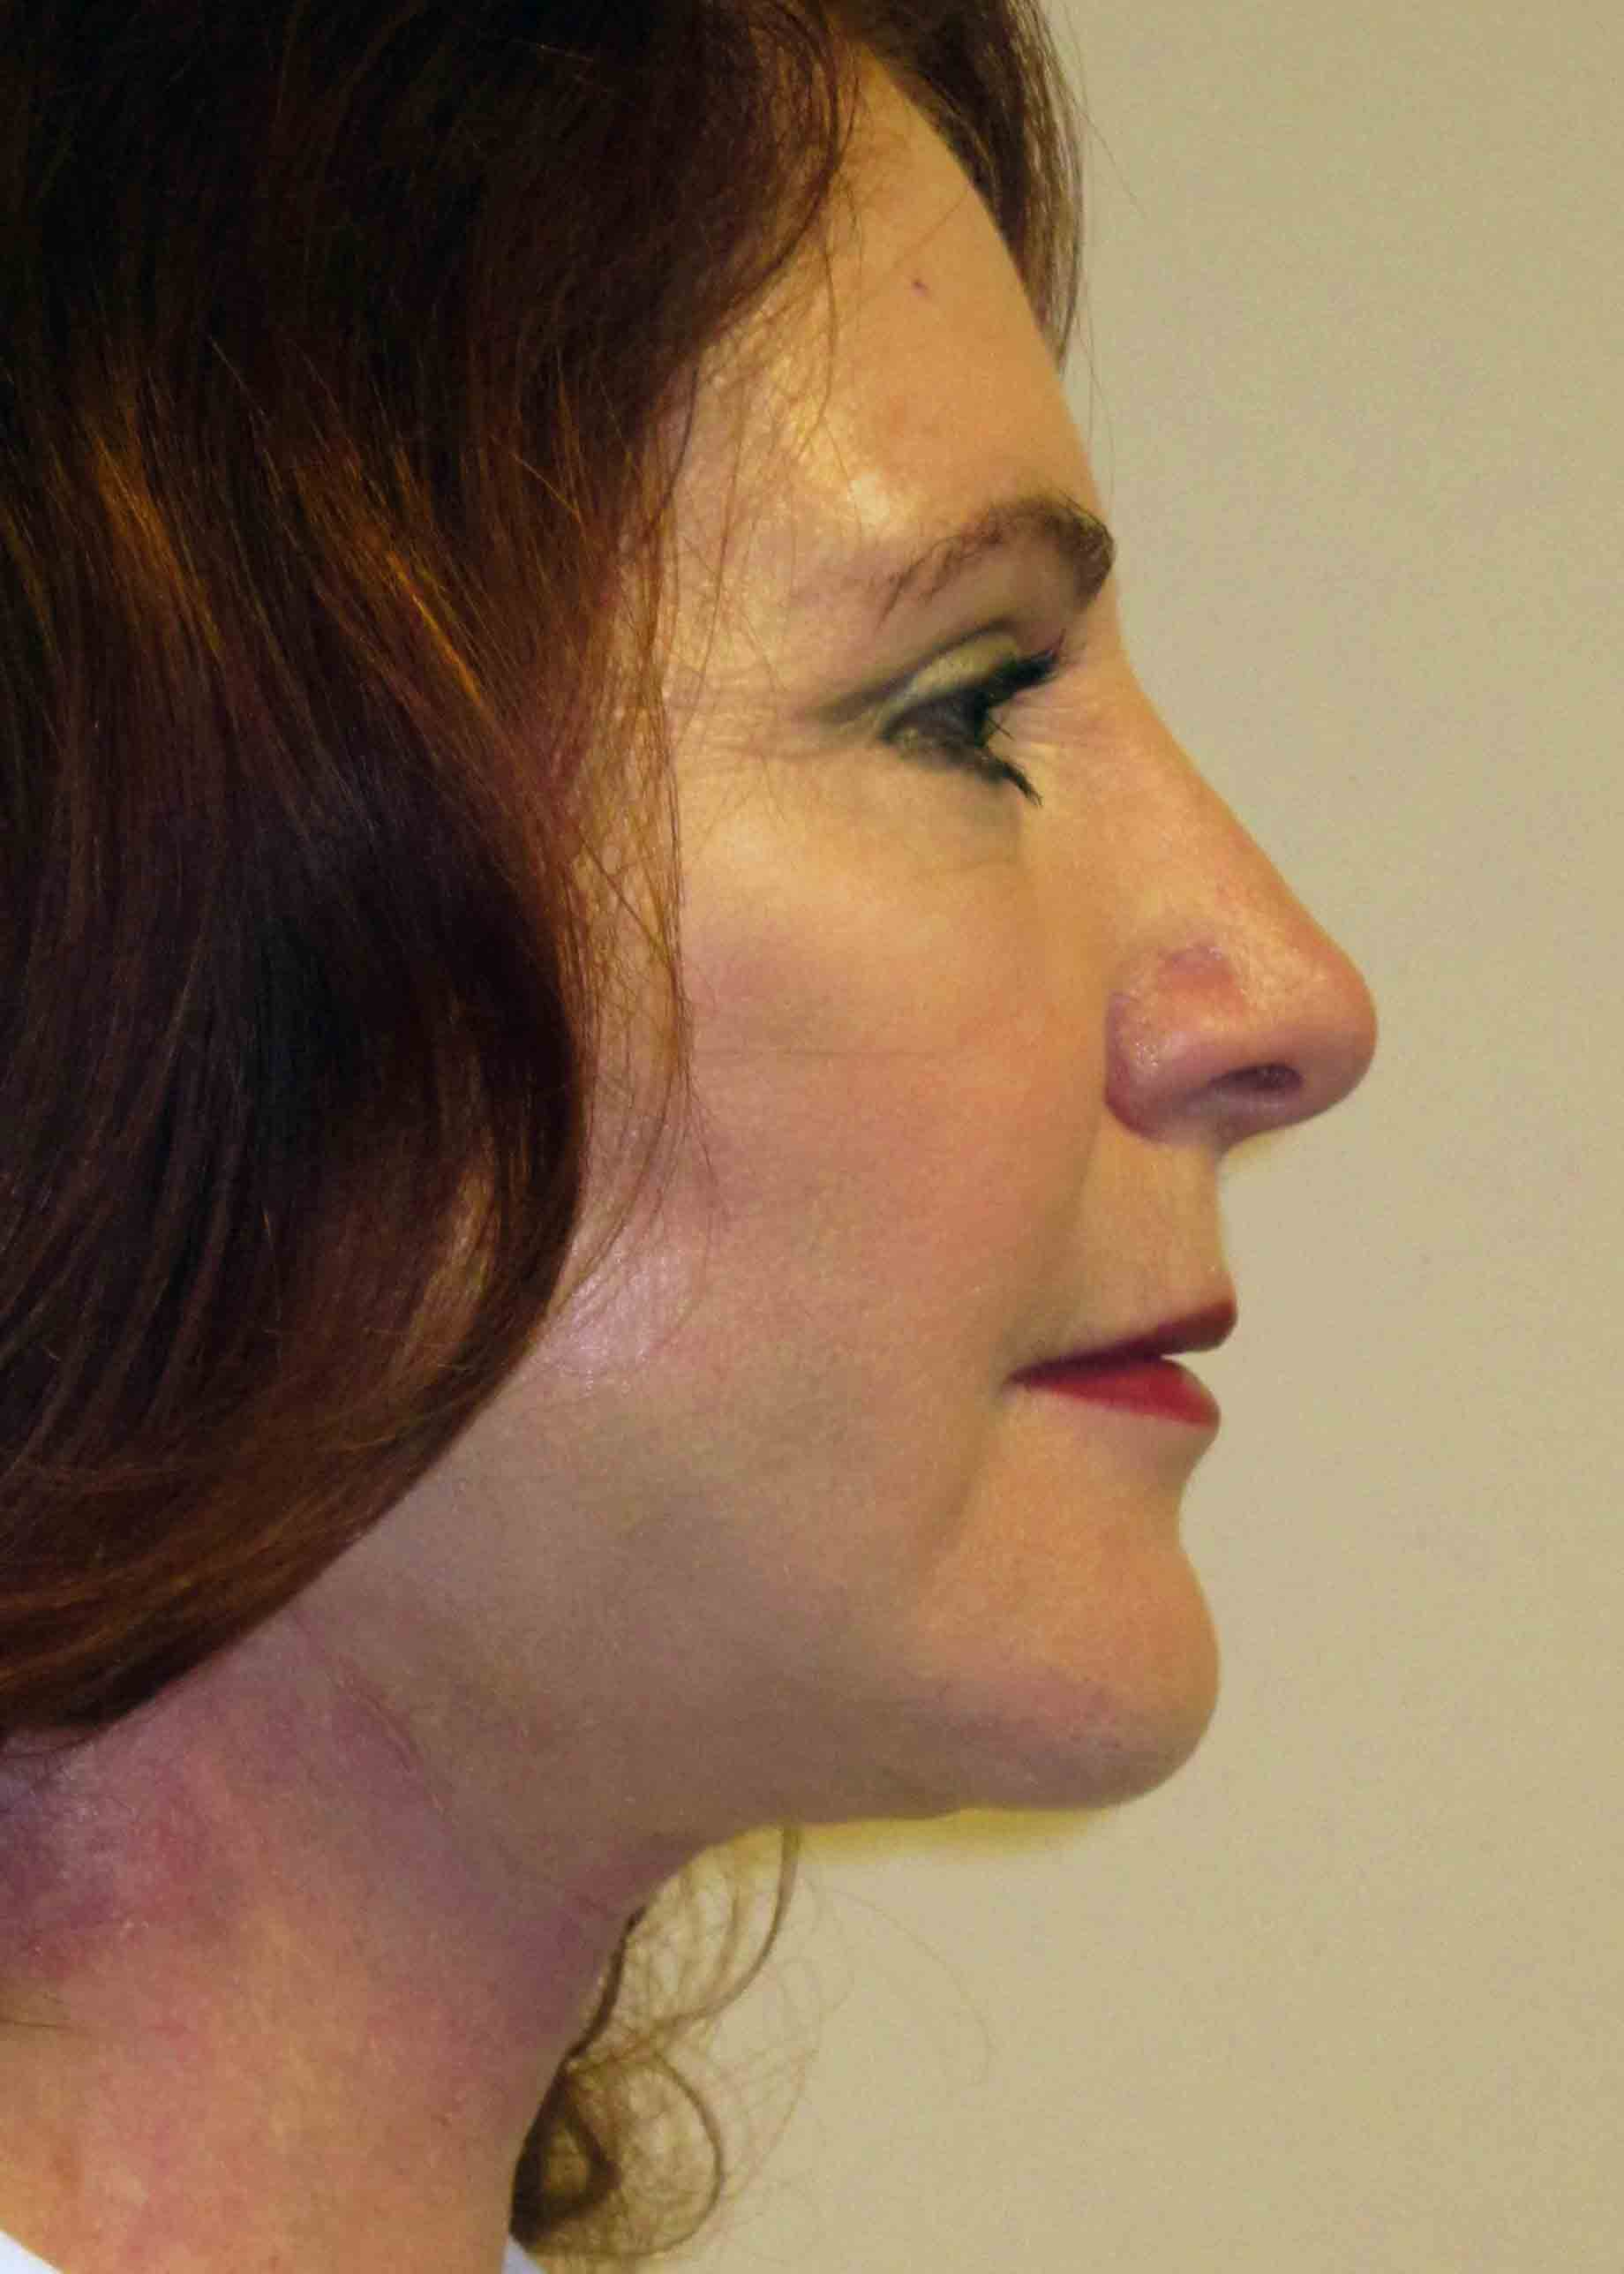 12230-2-post-op-facelift-profile.jpg